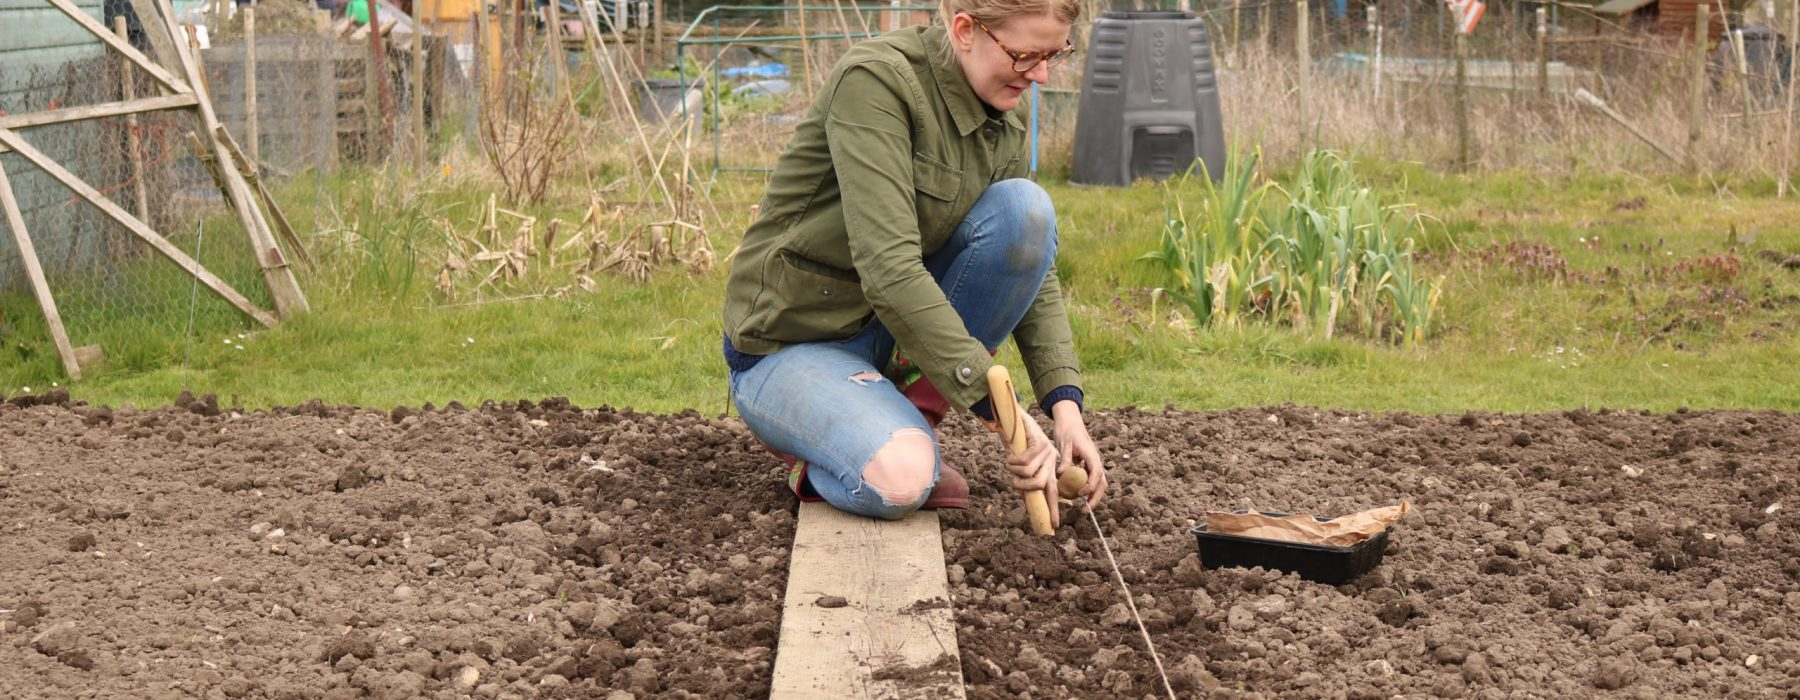 Potato Planting And Seed Sowing Lavender And Leeks